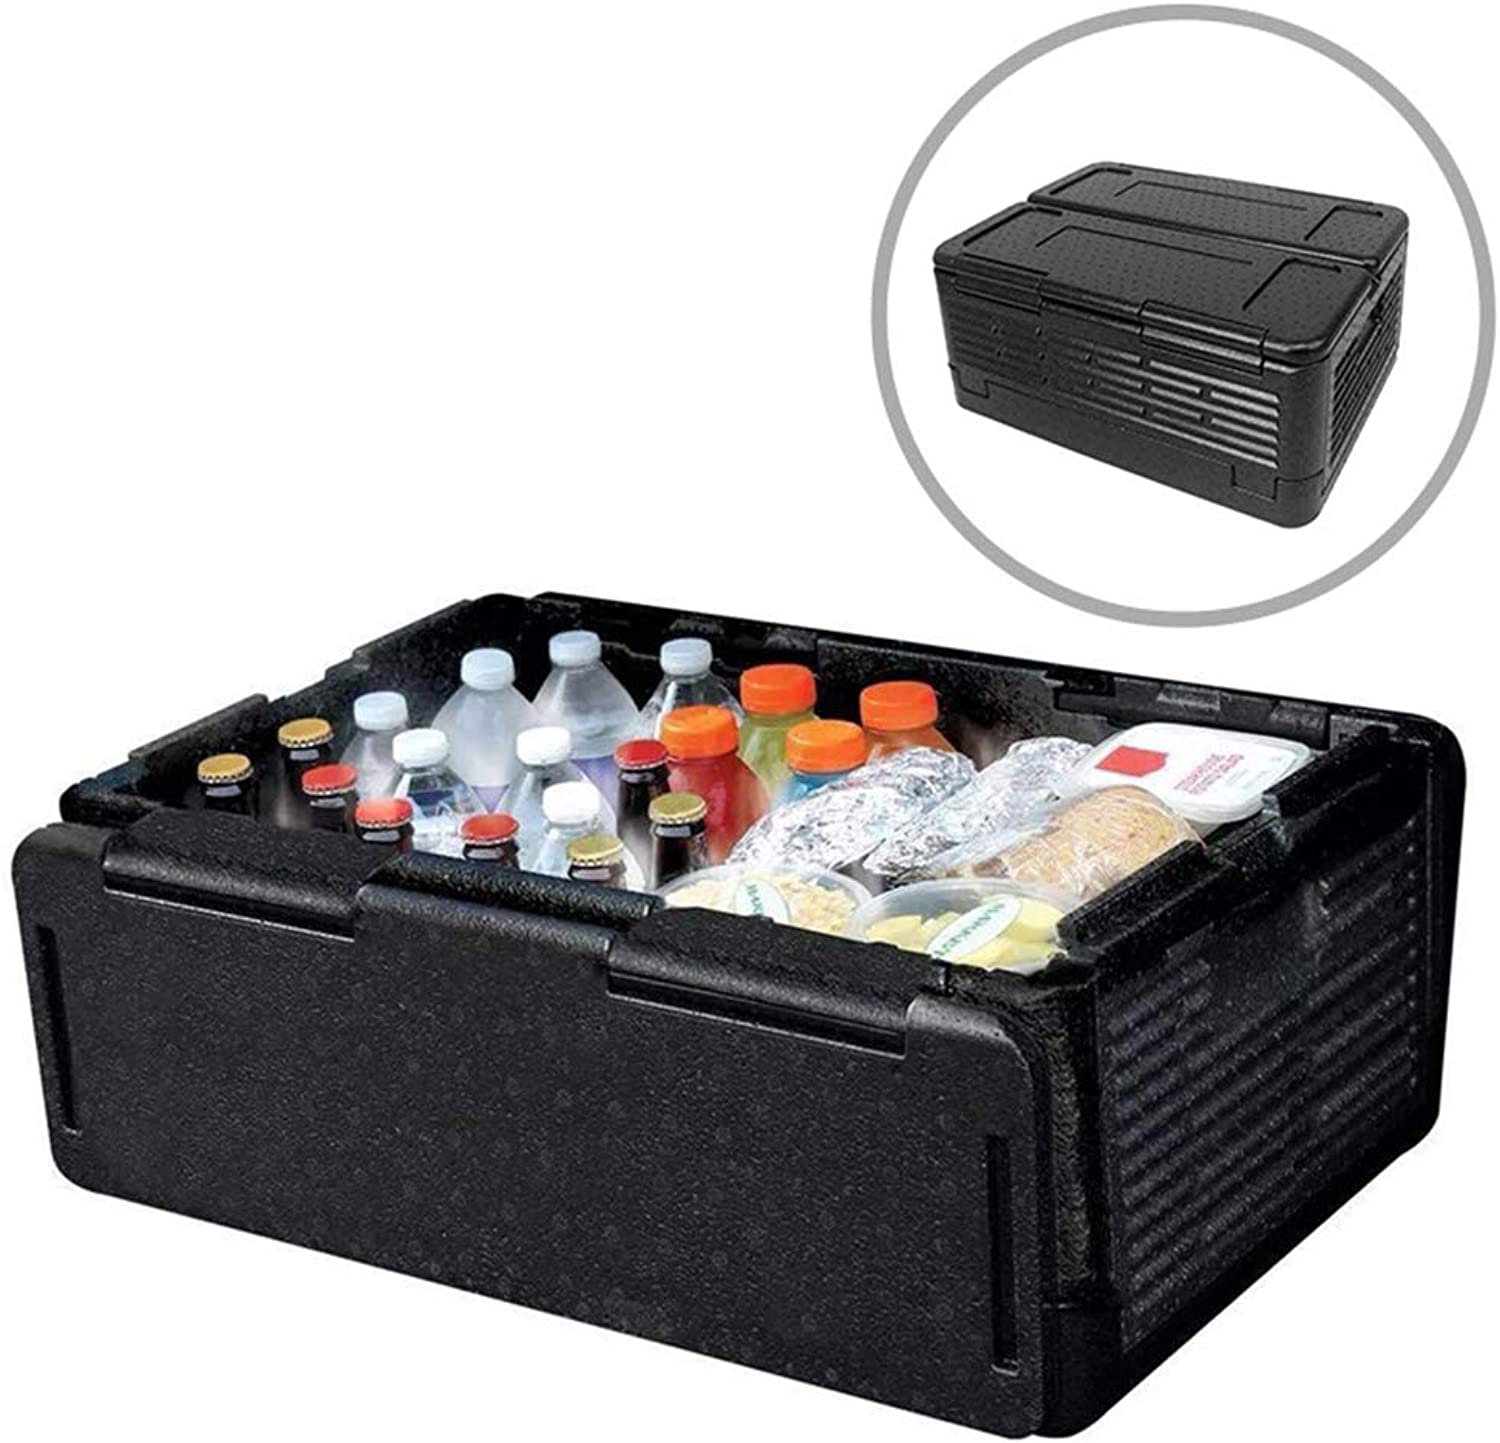 Insulated Cooler Box 24L 60L Collapsible Lightweight Car Trunk Organizer and Storage Box for Groceries, Parties, Picnics, Camping